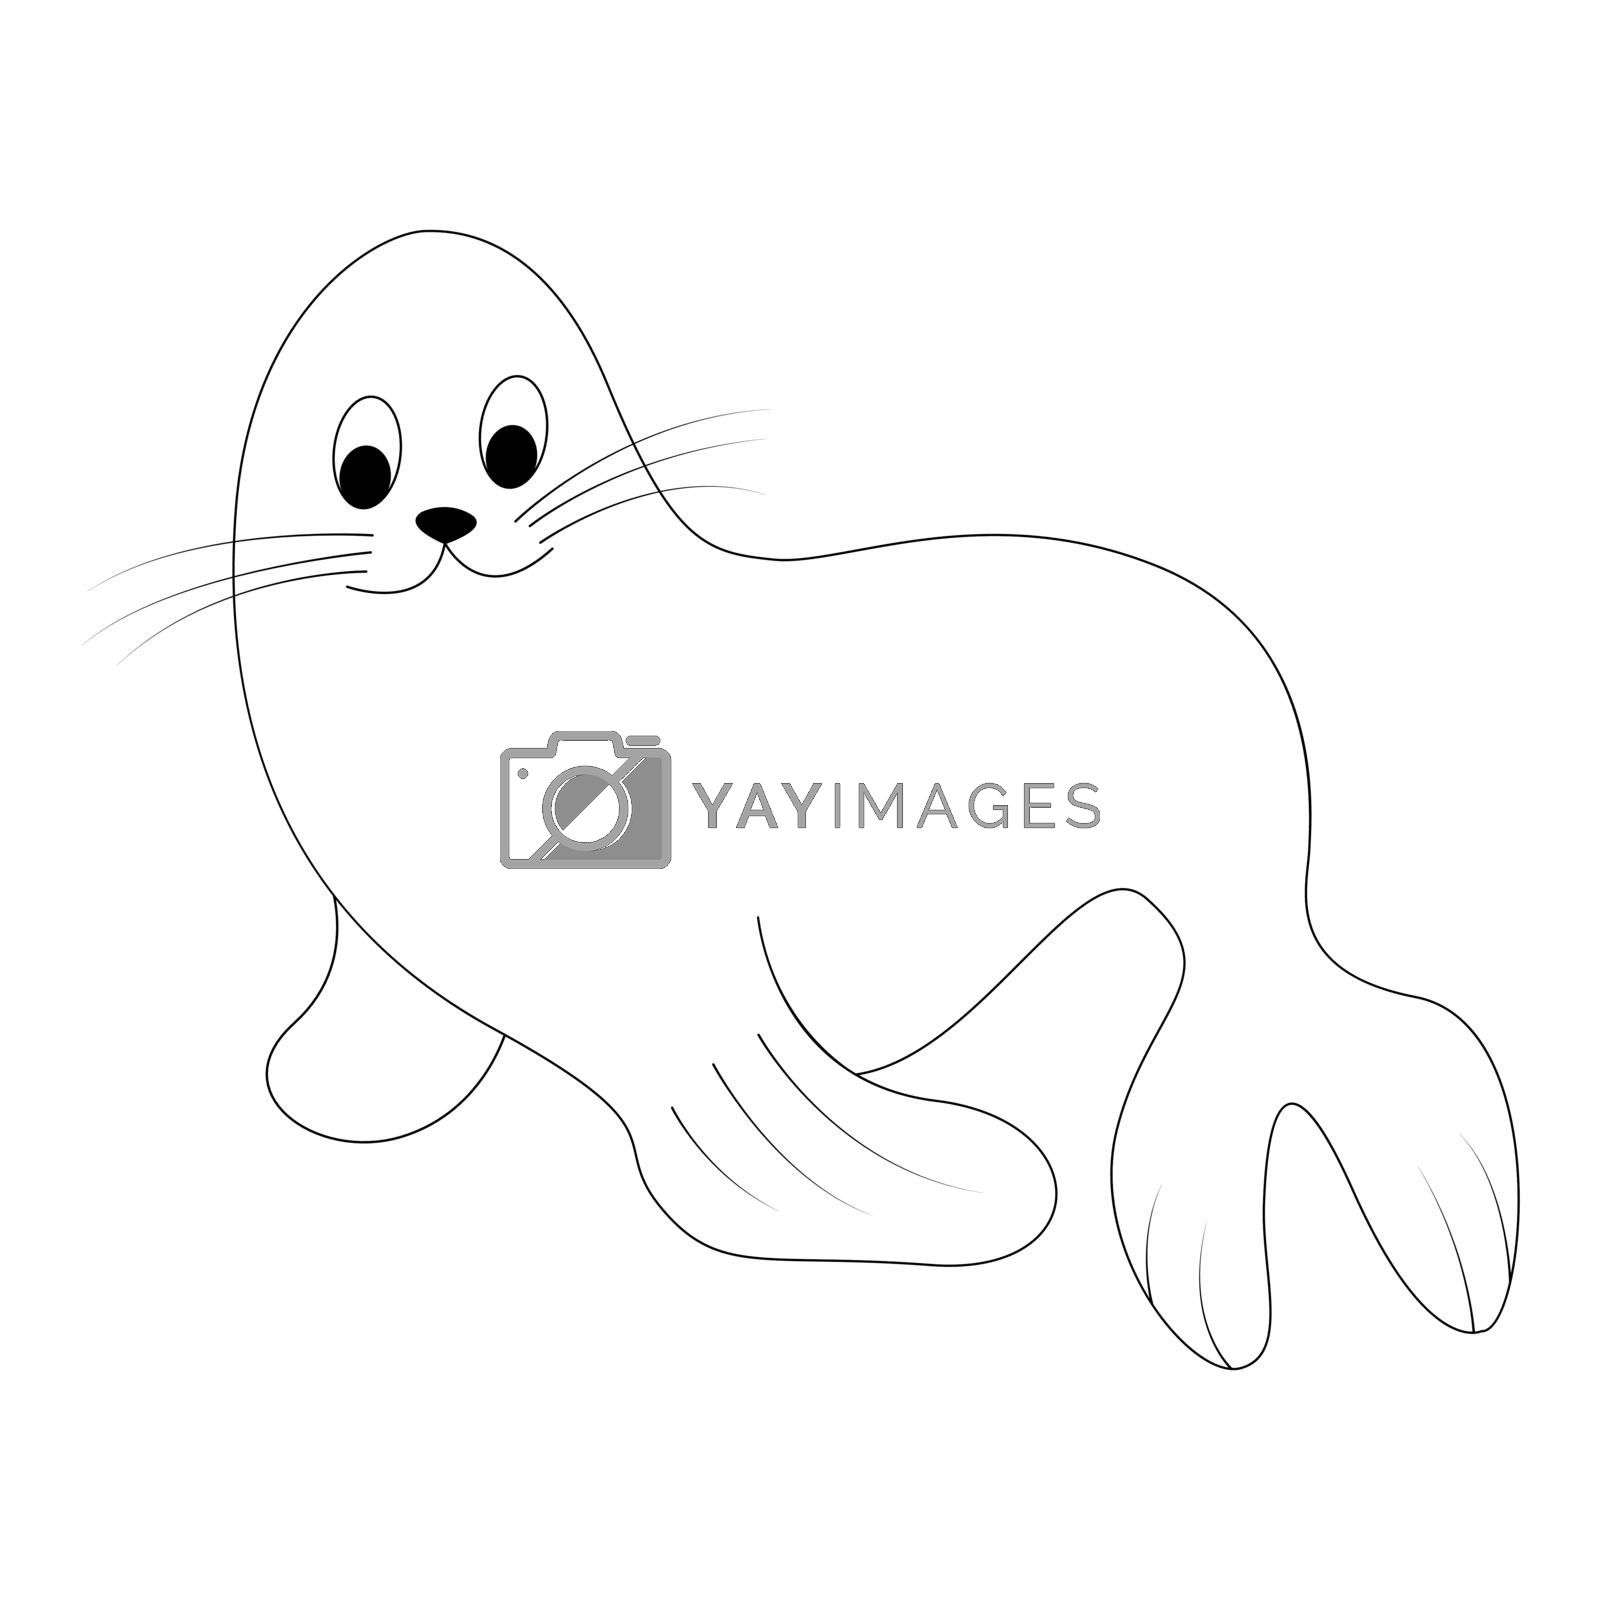 Cartoon fur seal outline. Vector illustration isolated on white background. Decoration for greeting cards, posters, flyers, prints for clothes.